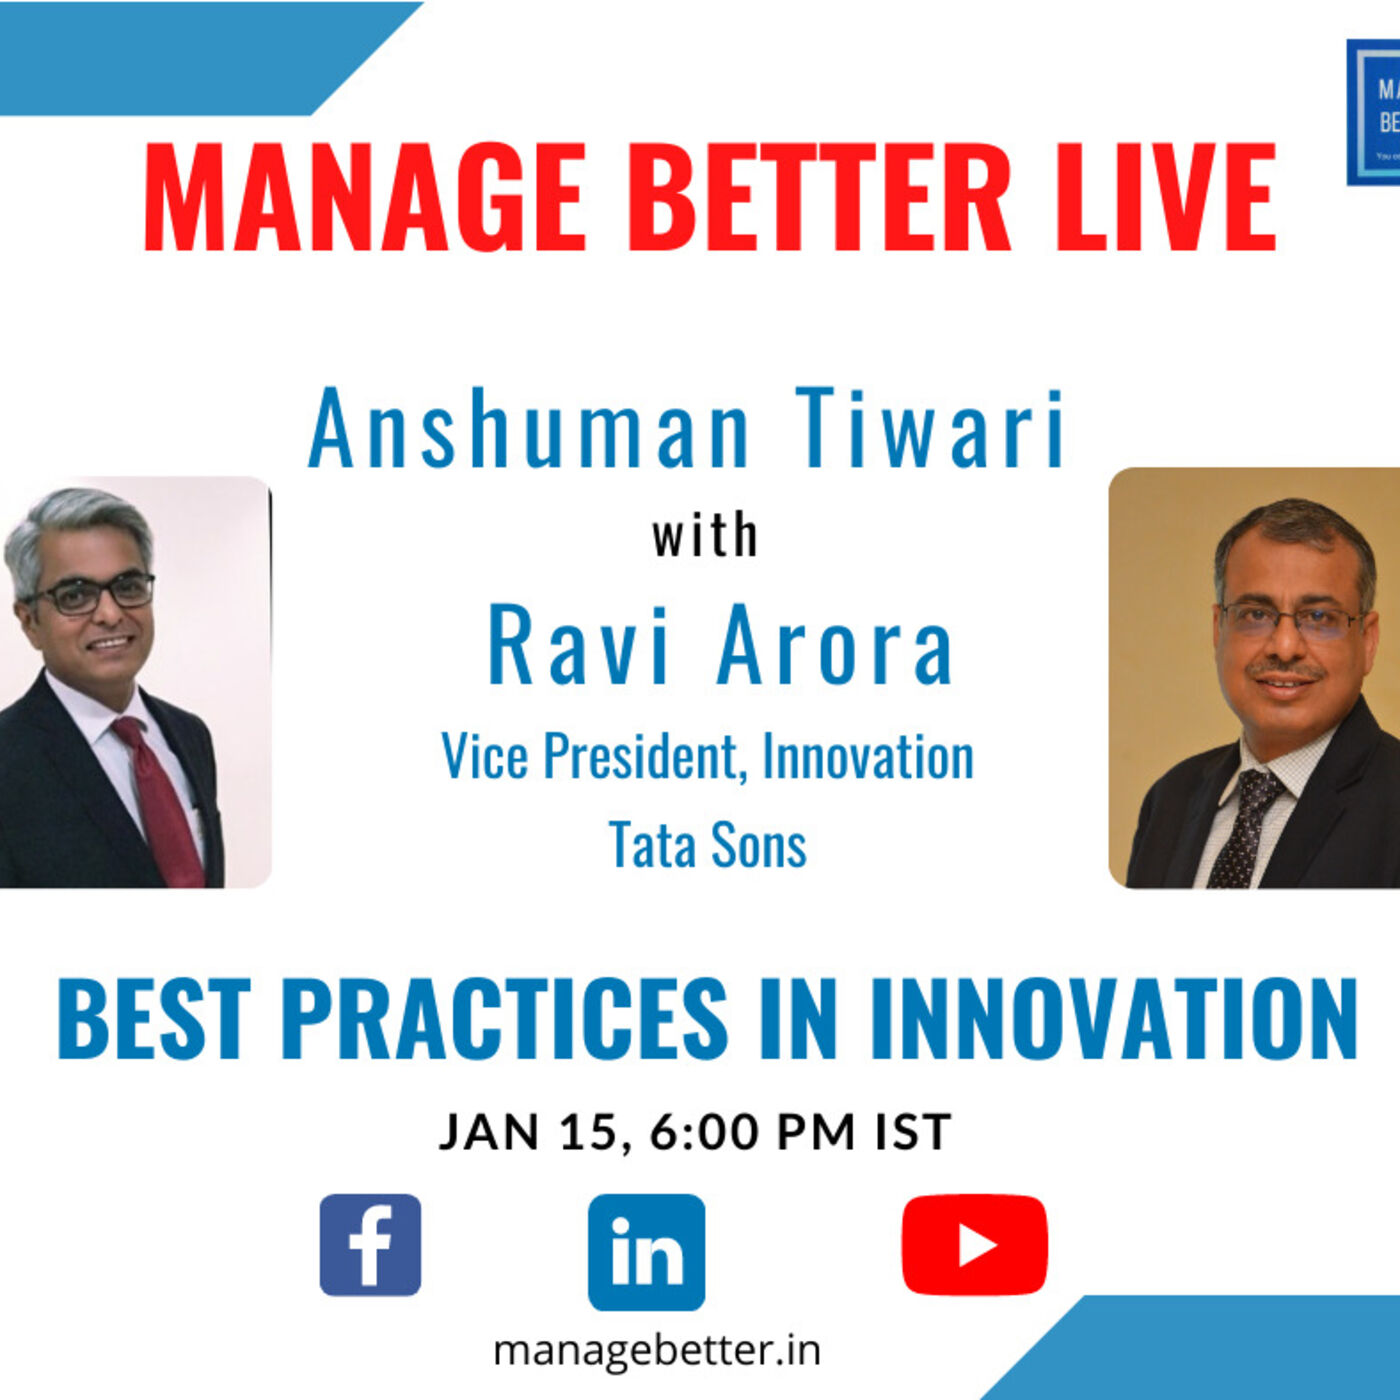 Innovation in the Tata Group - A chat with Ravi Arora